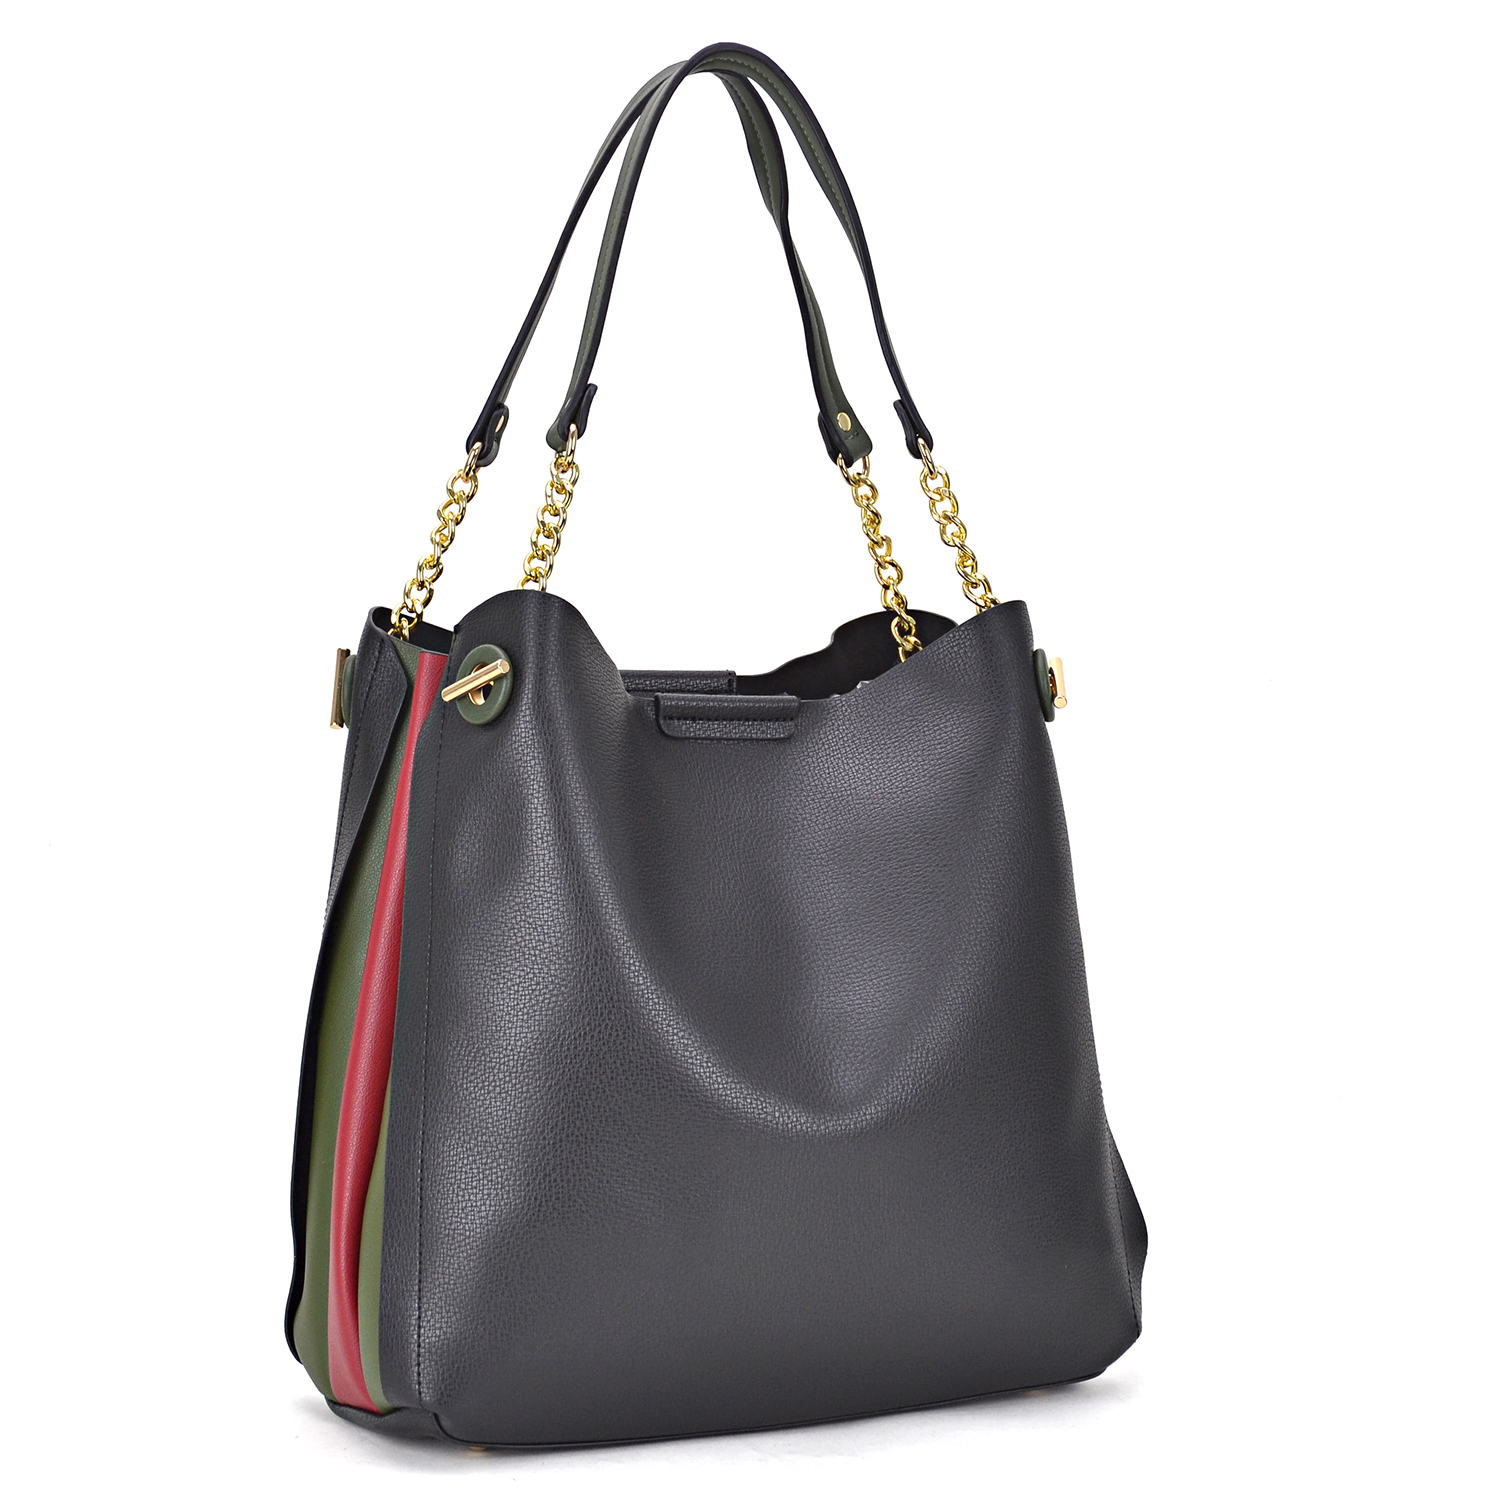 Faux Leather Satchel with double semi-chain anchor strap